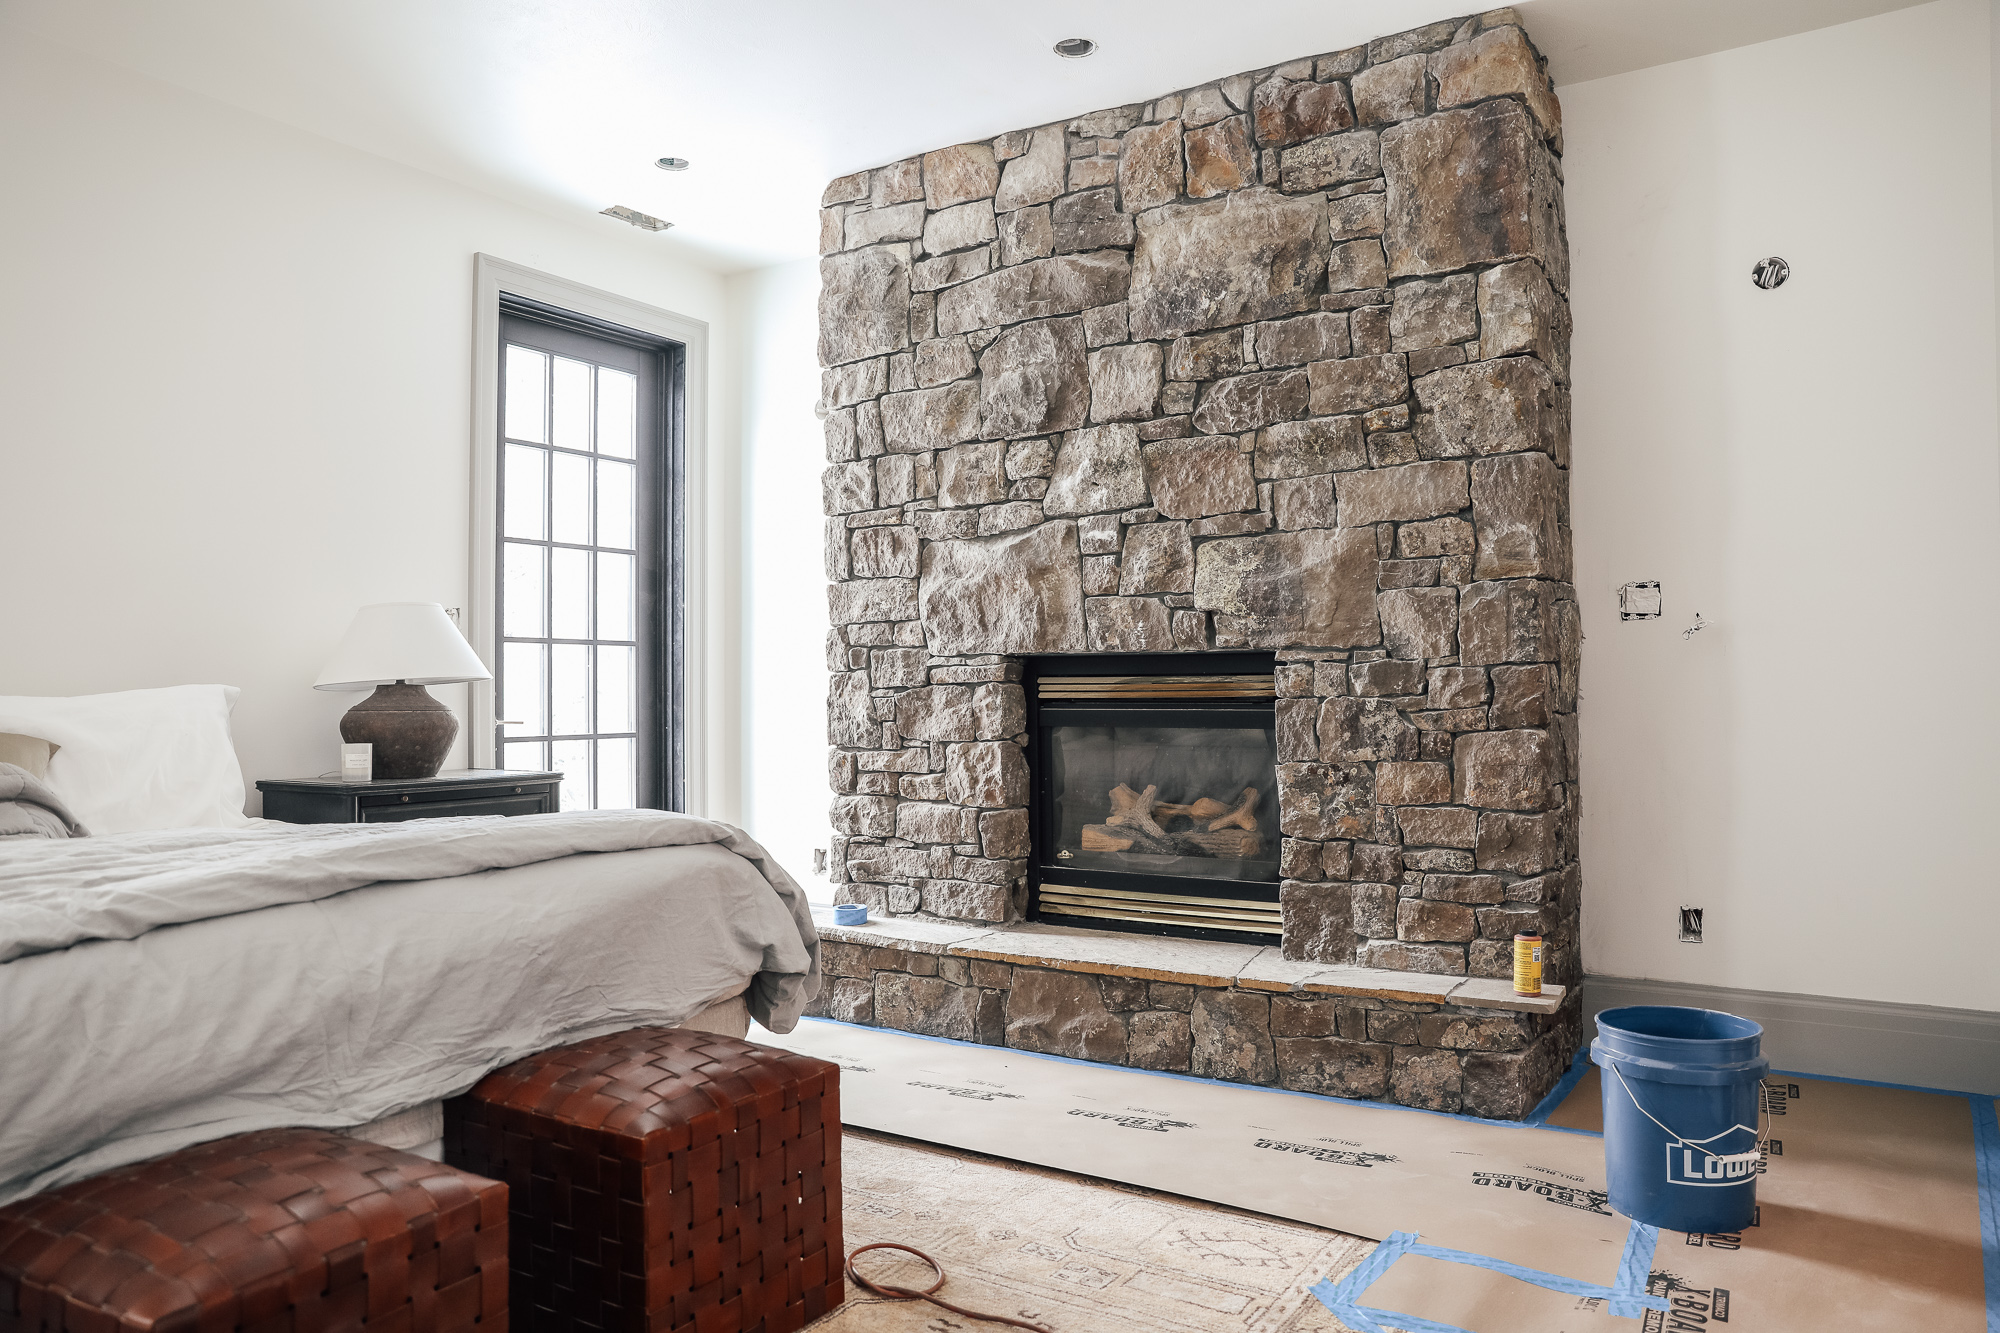 diy over grouted stone fireplace